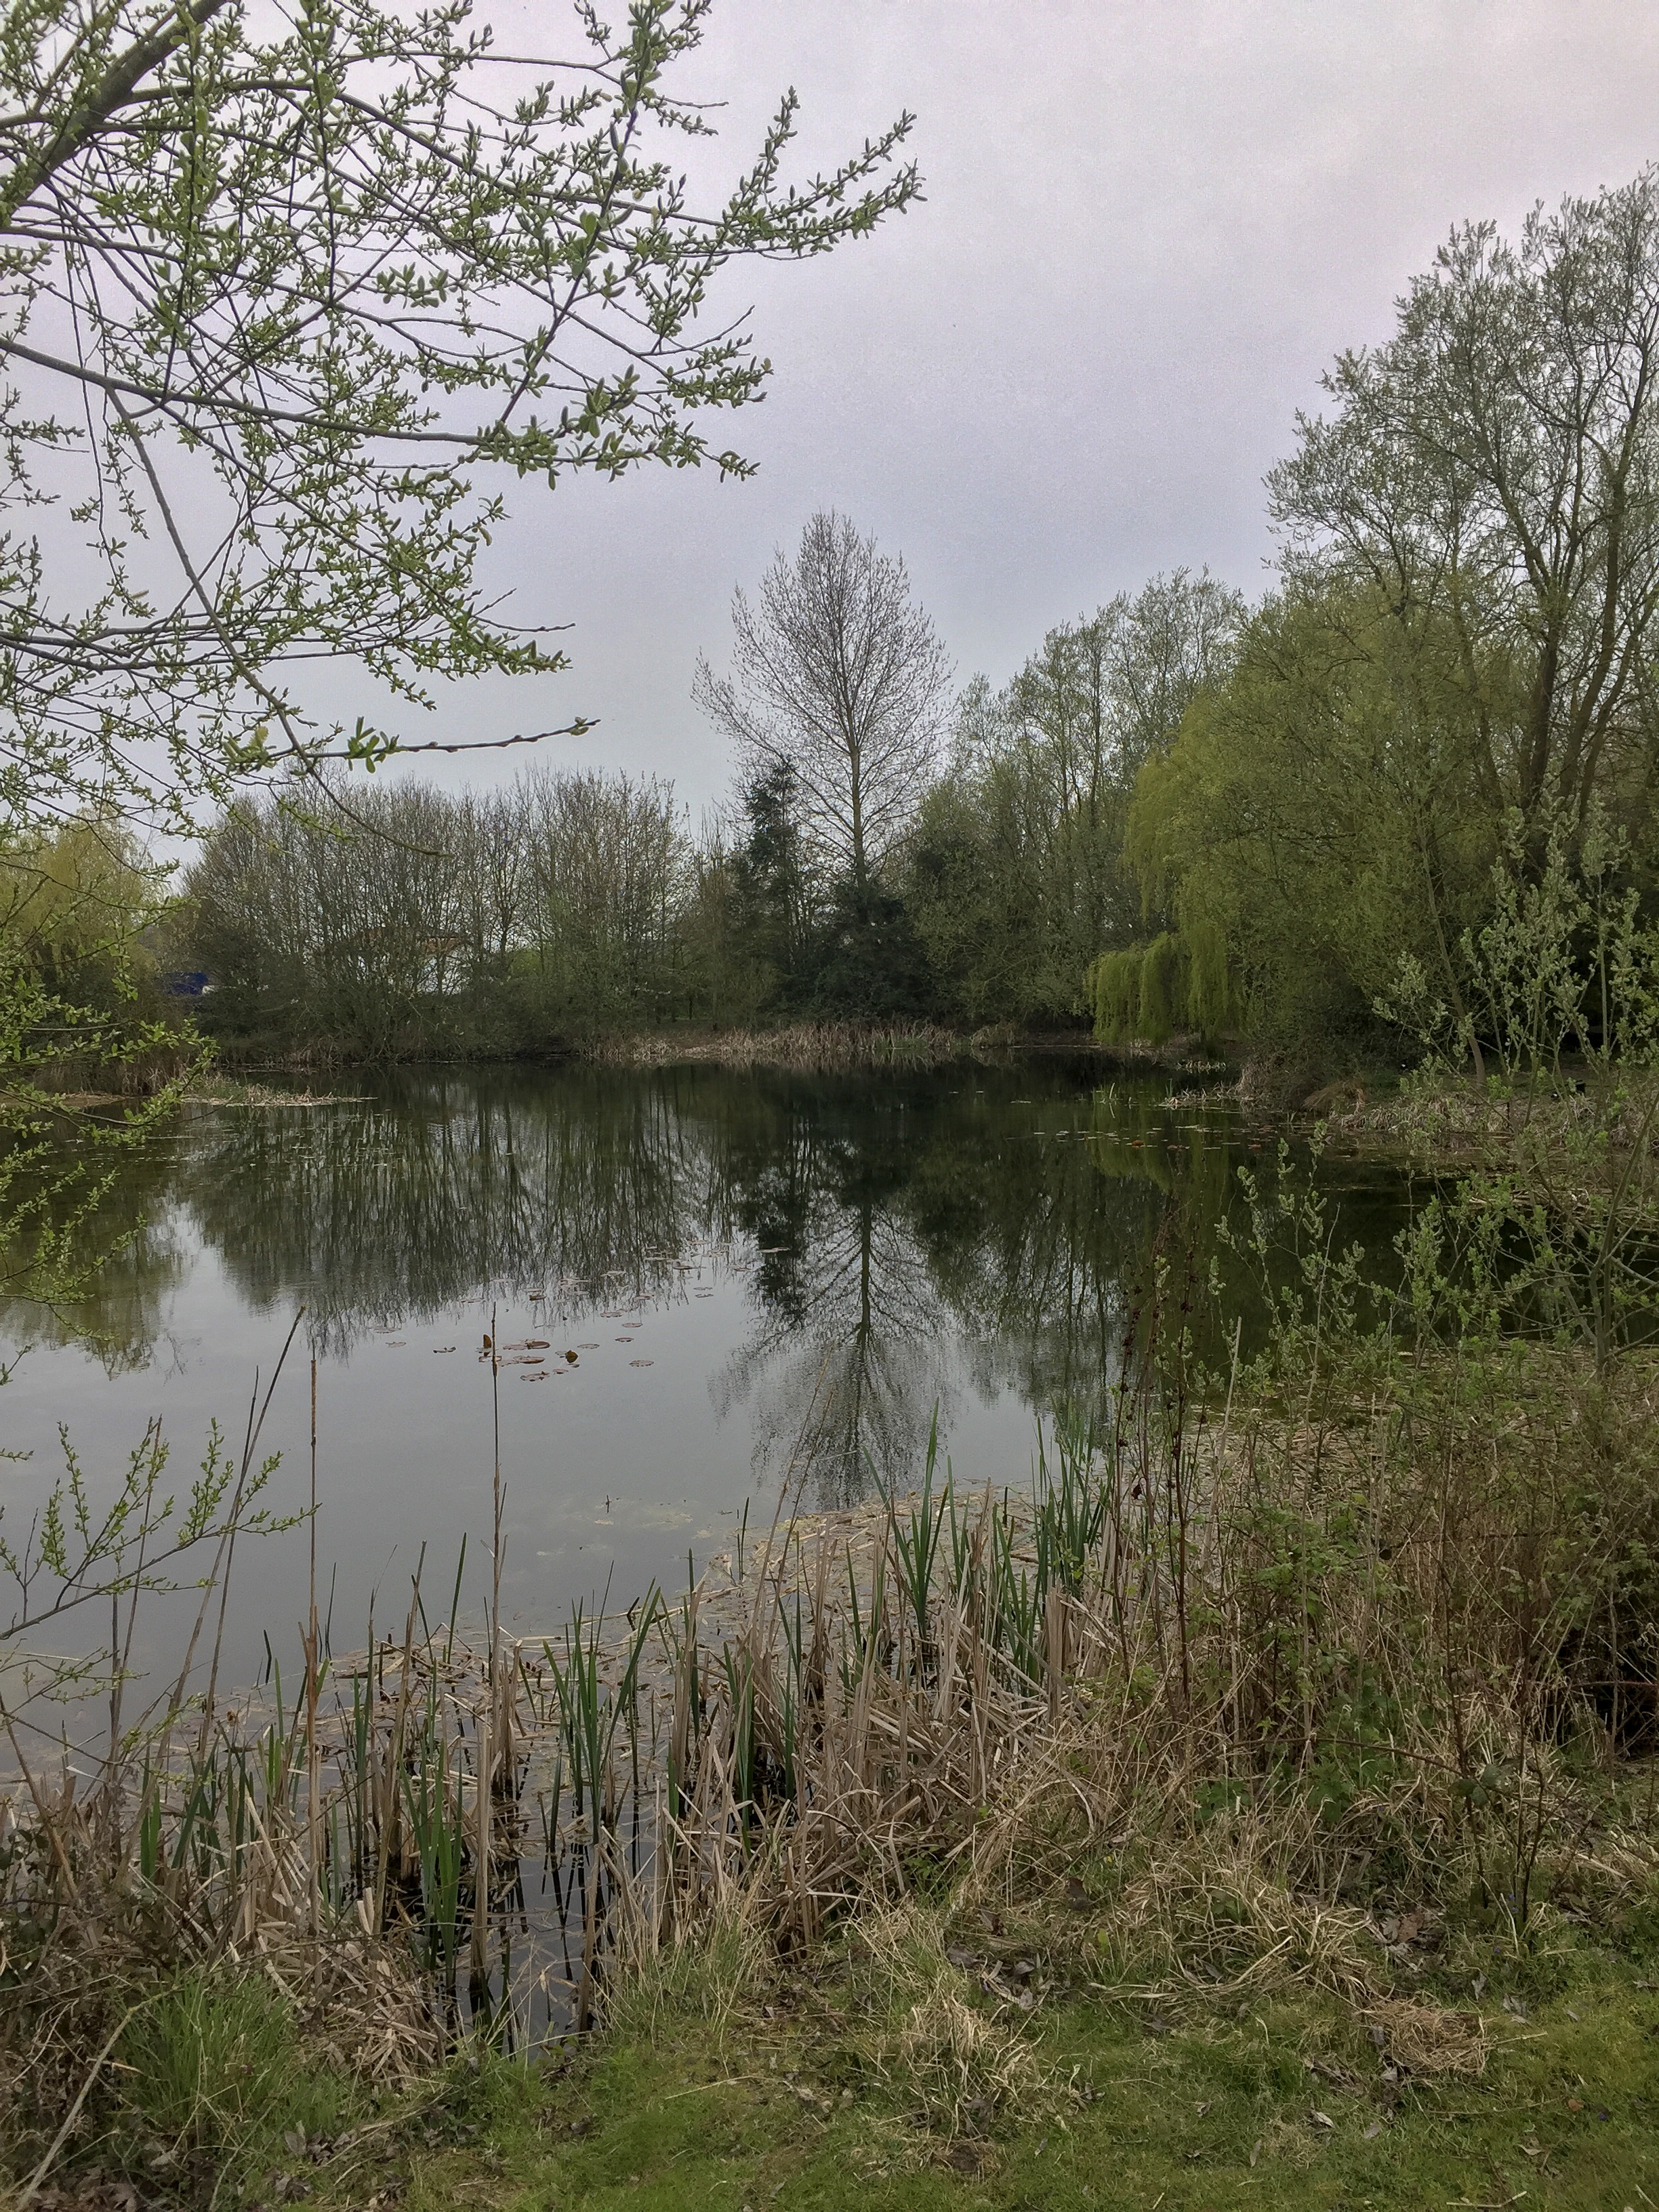 Spitfitre is no easy lake - and the common carp Simon Crow tempted had eluded capture for two years.